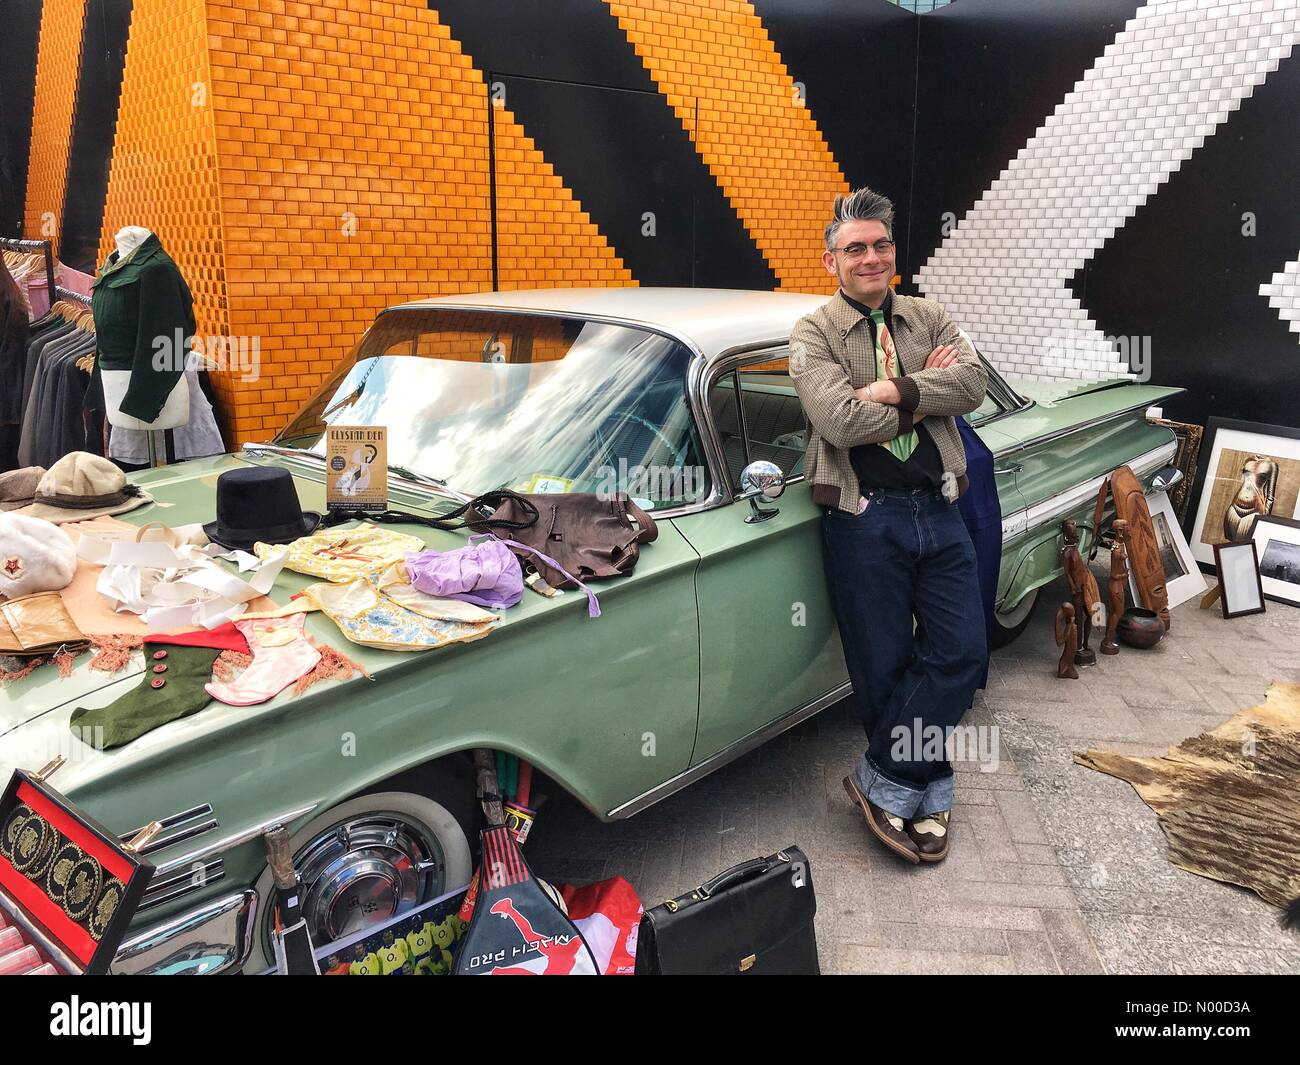 Stable St, London, UK. 23rd Apr, 2017. A trader lined up next to a vintage car at the Classic Car Boot Sale in Granary Stock Photo